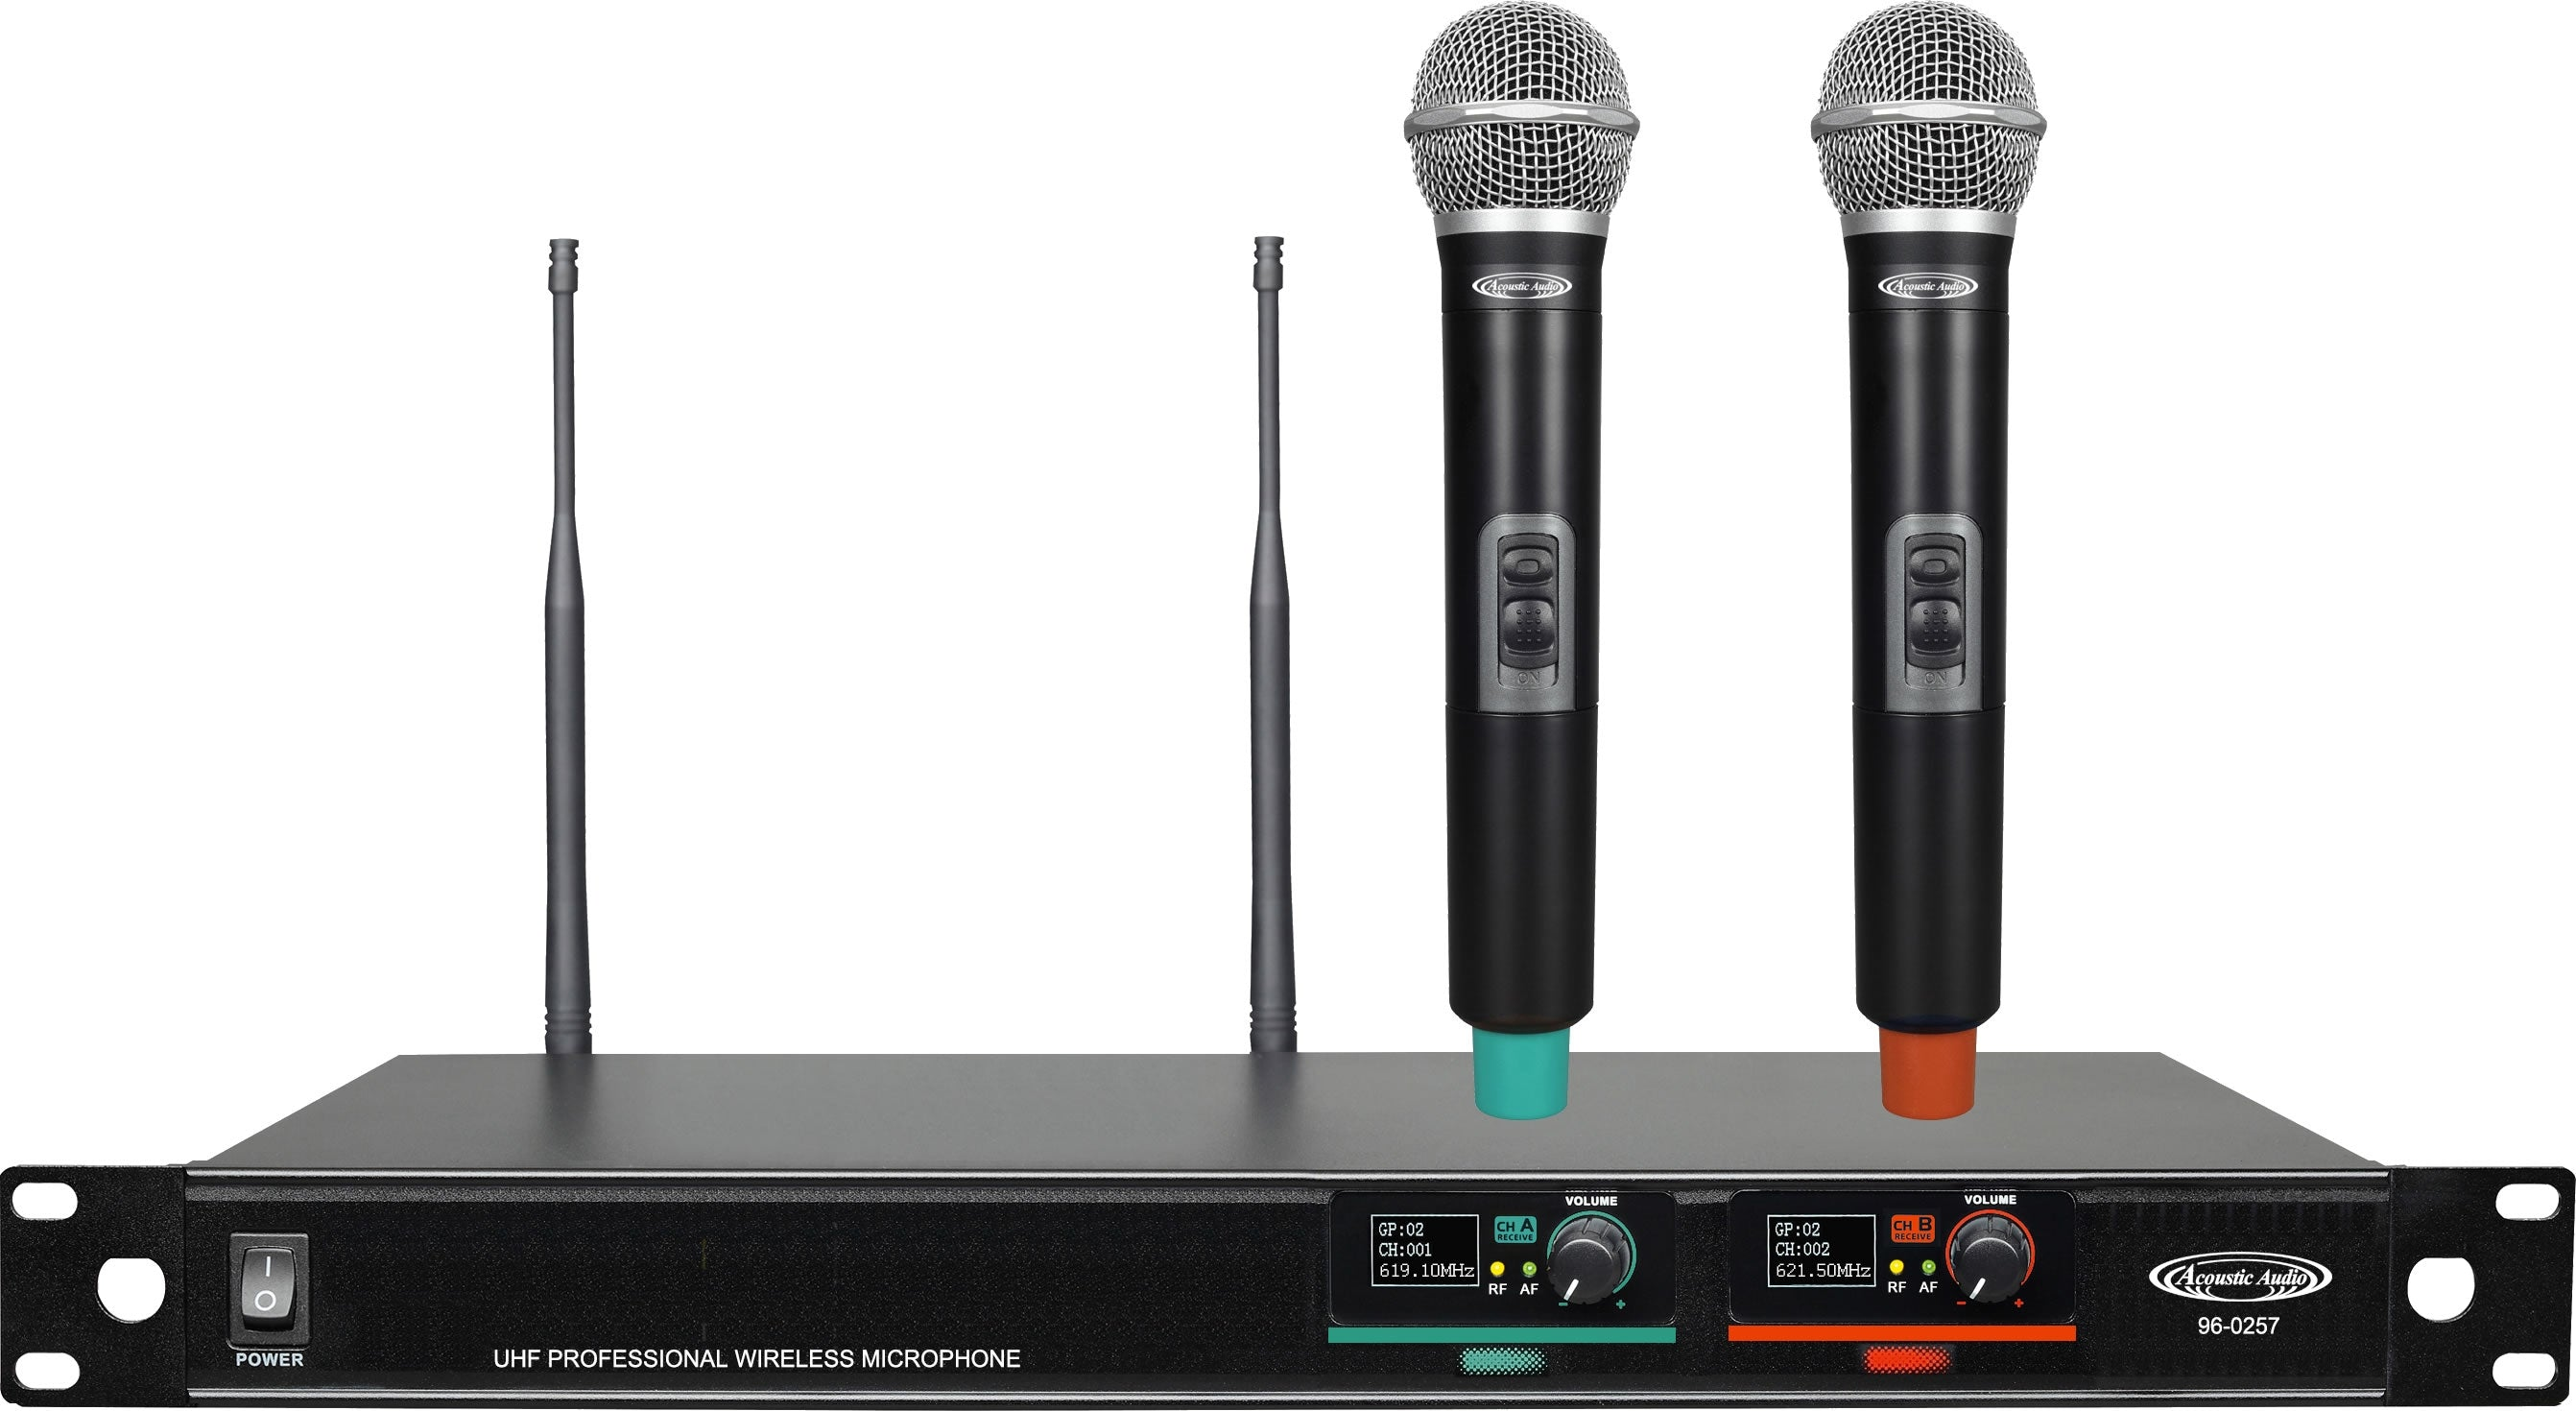 96-0257 UHF Professional Wireless Microphone Systems - 2*Wireless Microphones